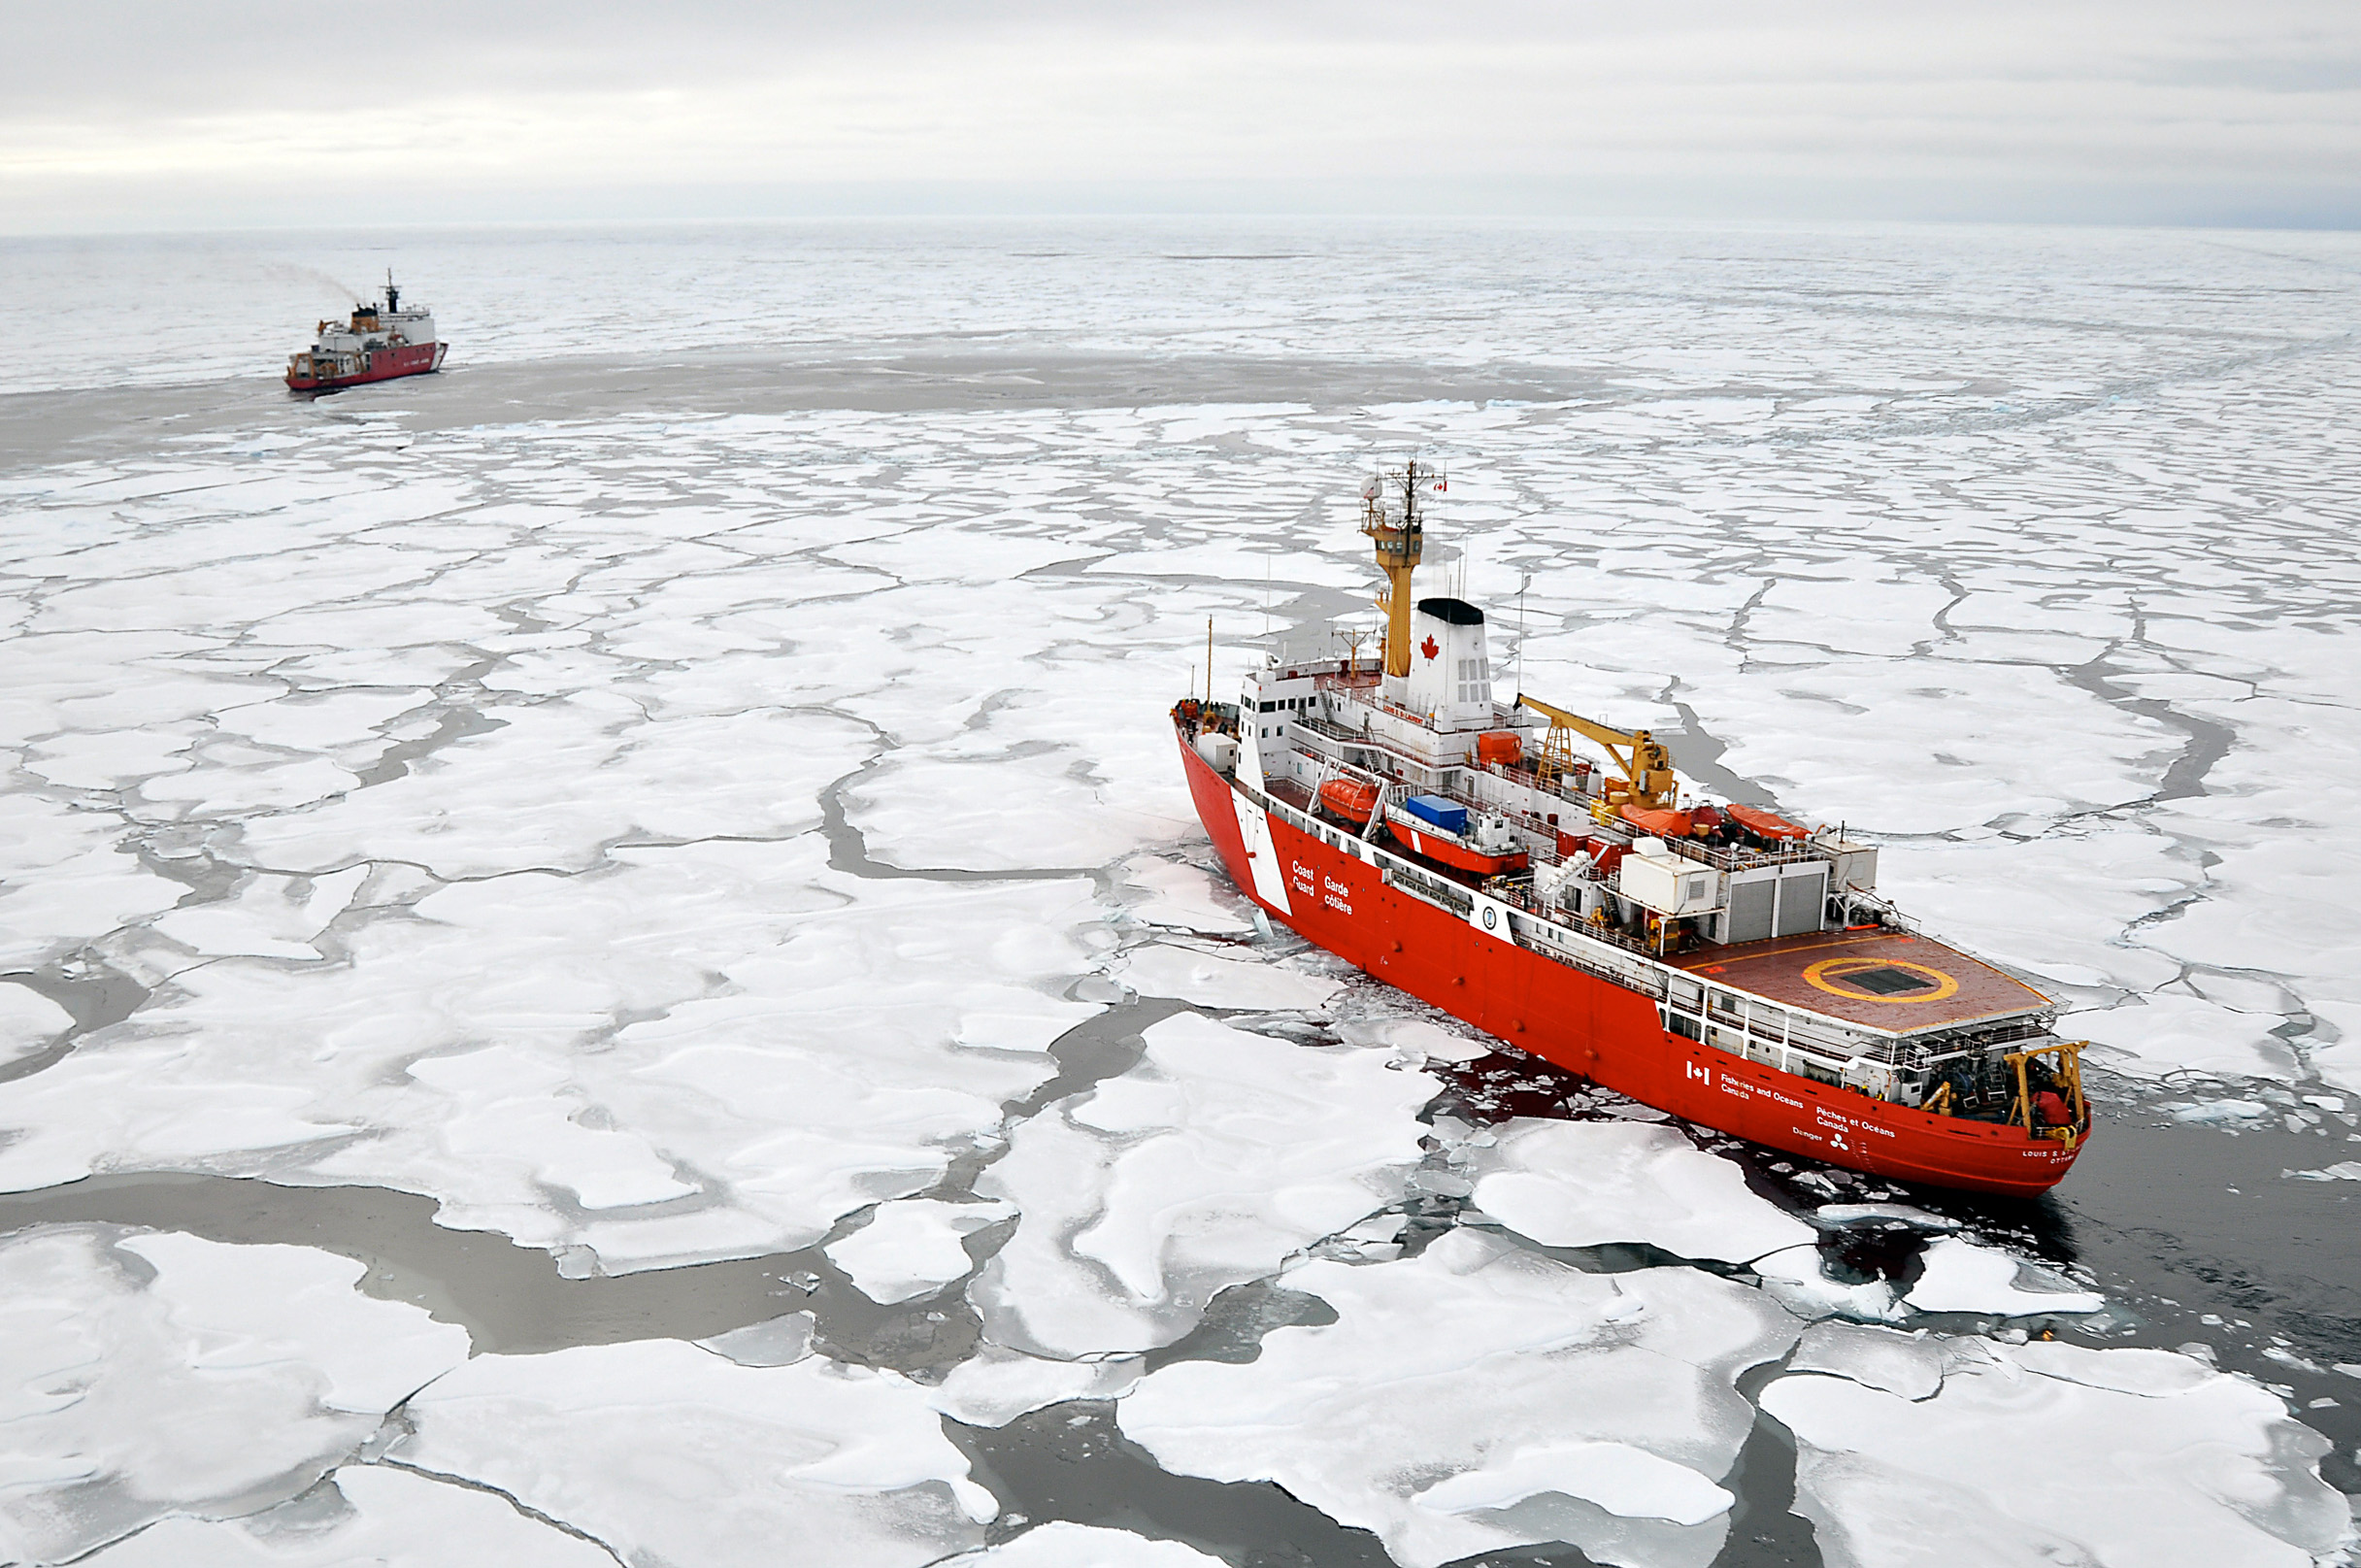 f81925b243 Canadian Coast Guard ship Louis S. St-Laurent makes an approach to the Coast  Guard cutter Healy in the Arctic Ocean Sept. 2009. As Arctic marine traffic  ...